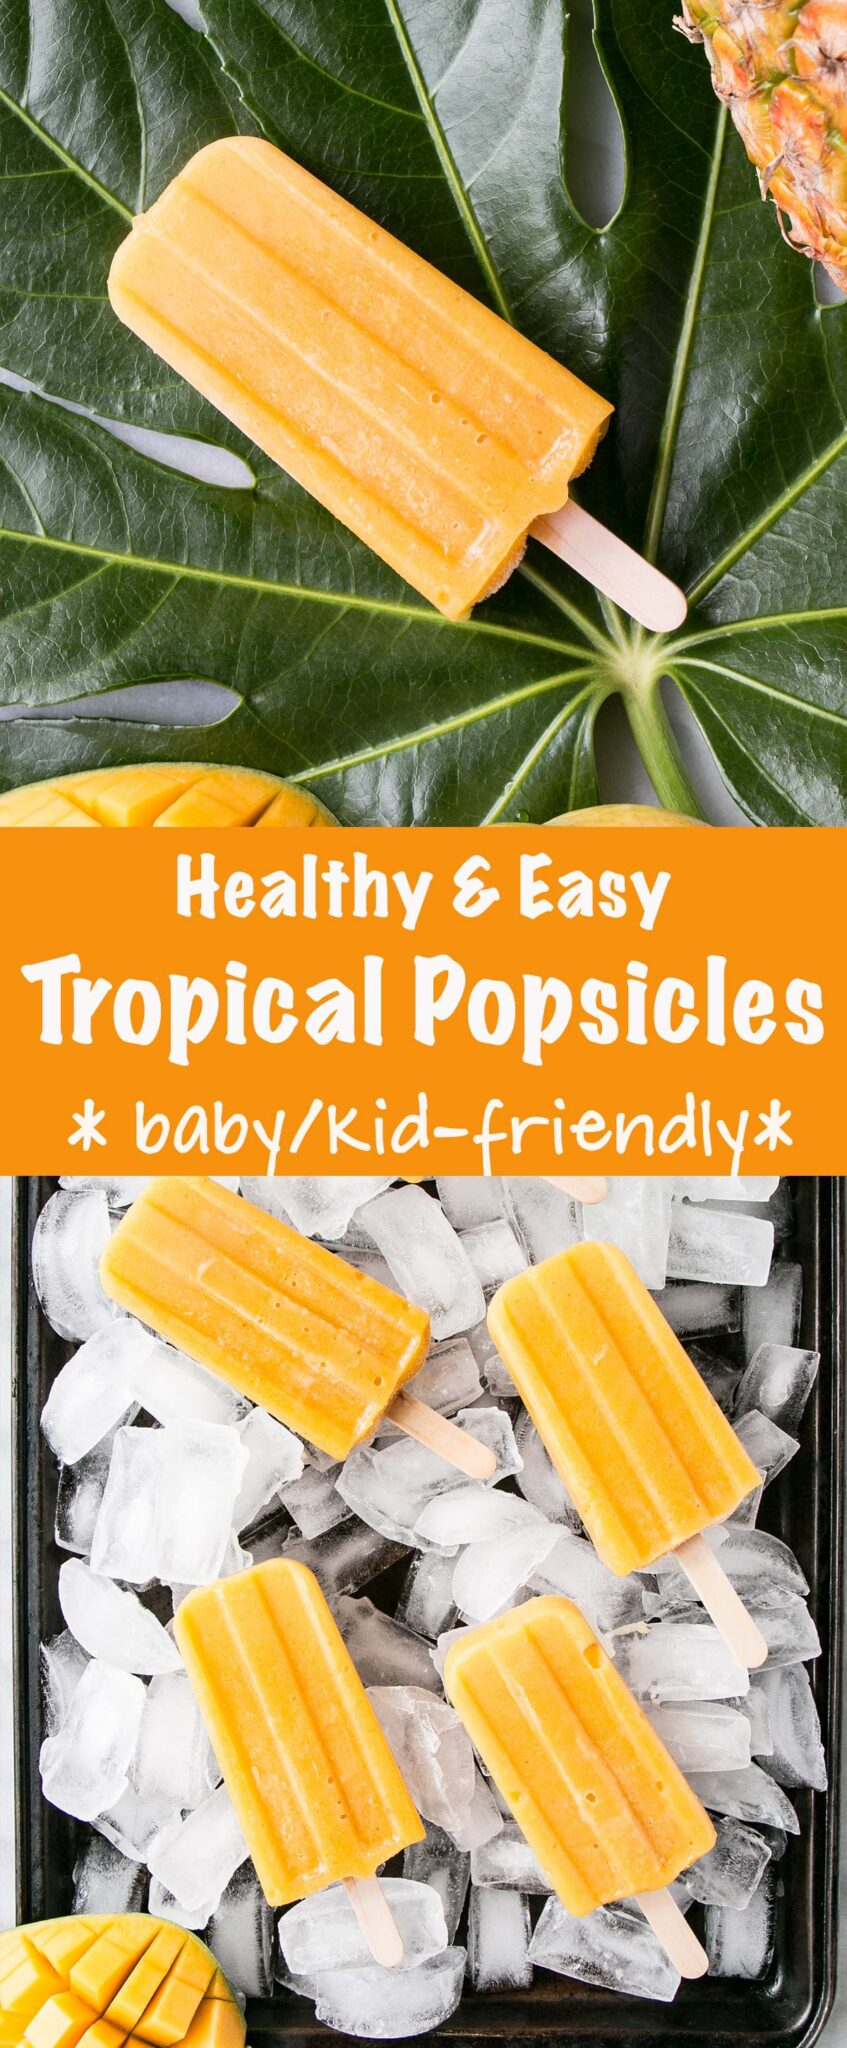 Tropical-Popsicles